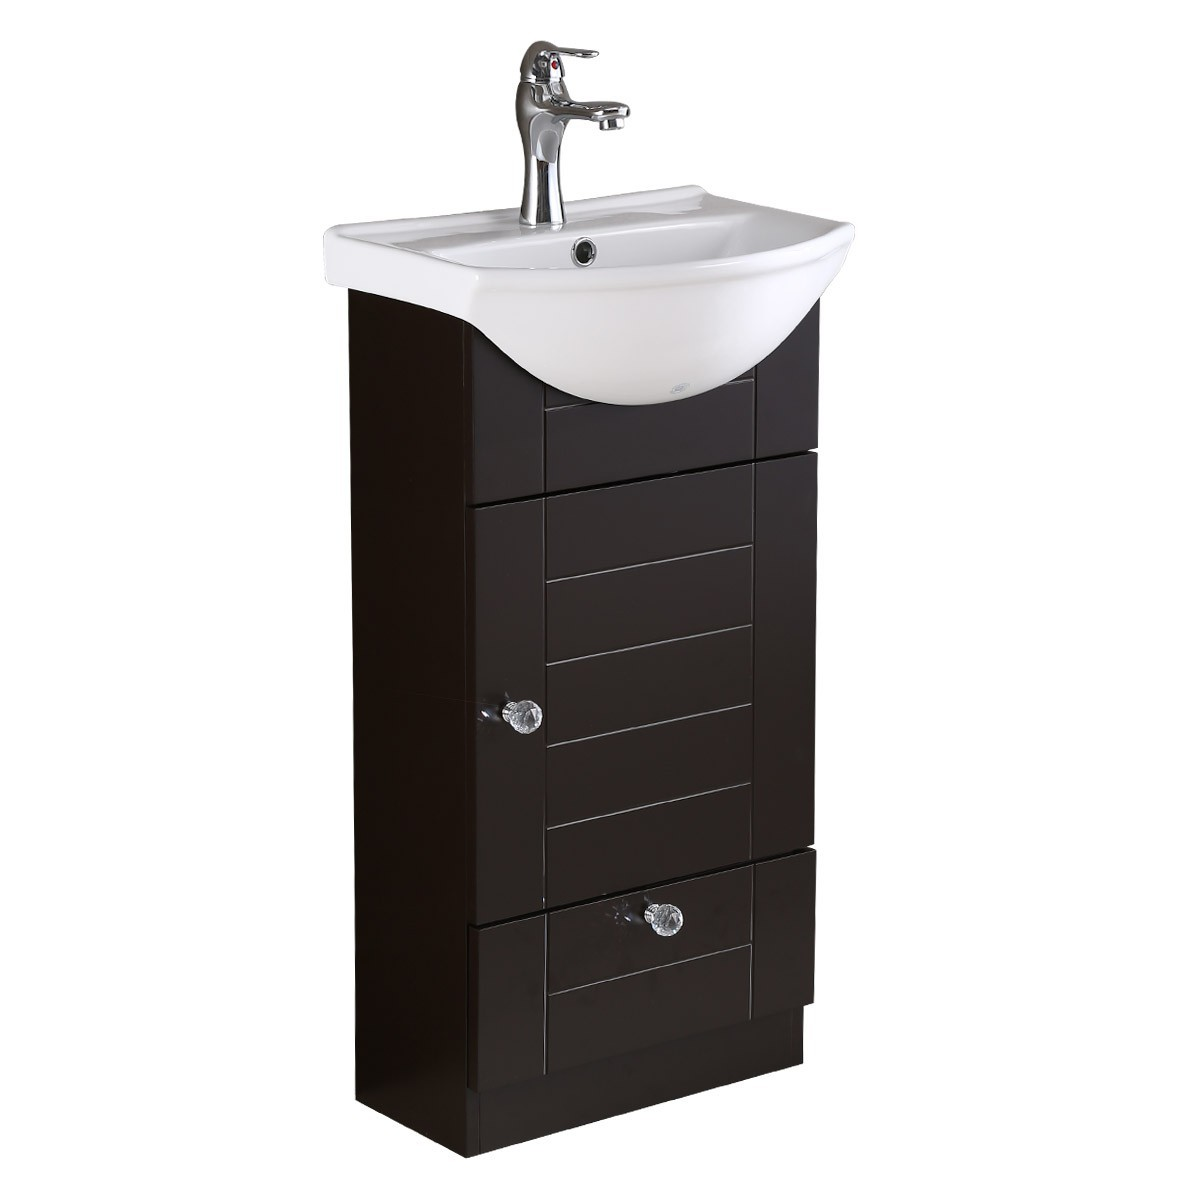 Bathroom Cabinet Vanity Sink Wall Mount Black Renovators Supply ...